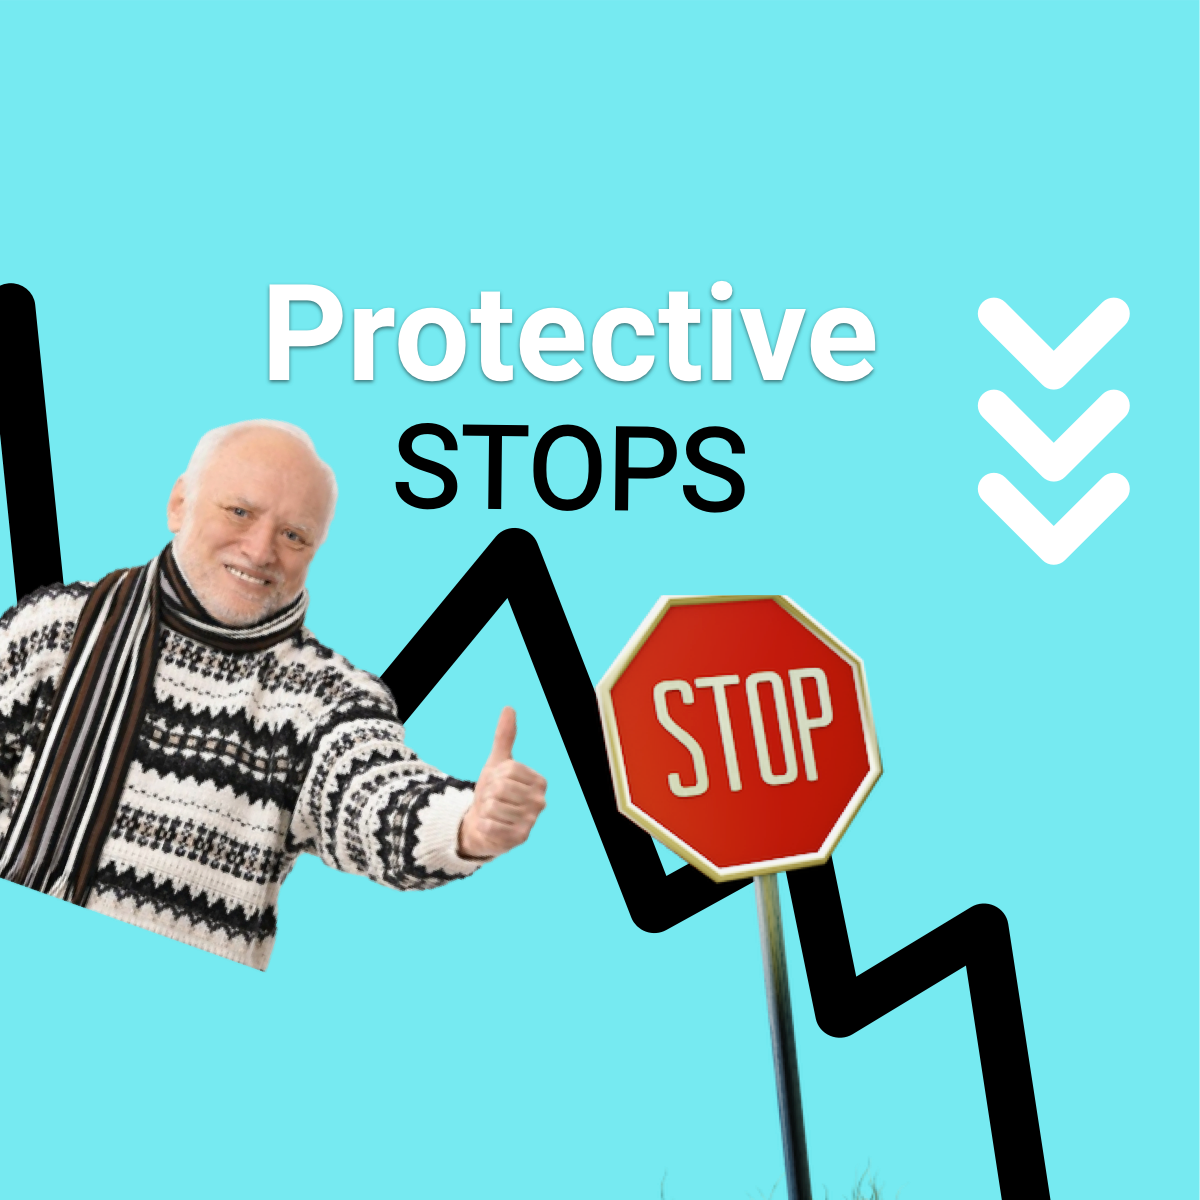 Protective stops: falling markets and stop sign.